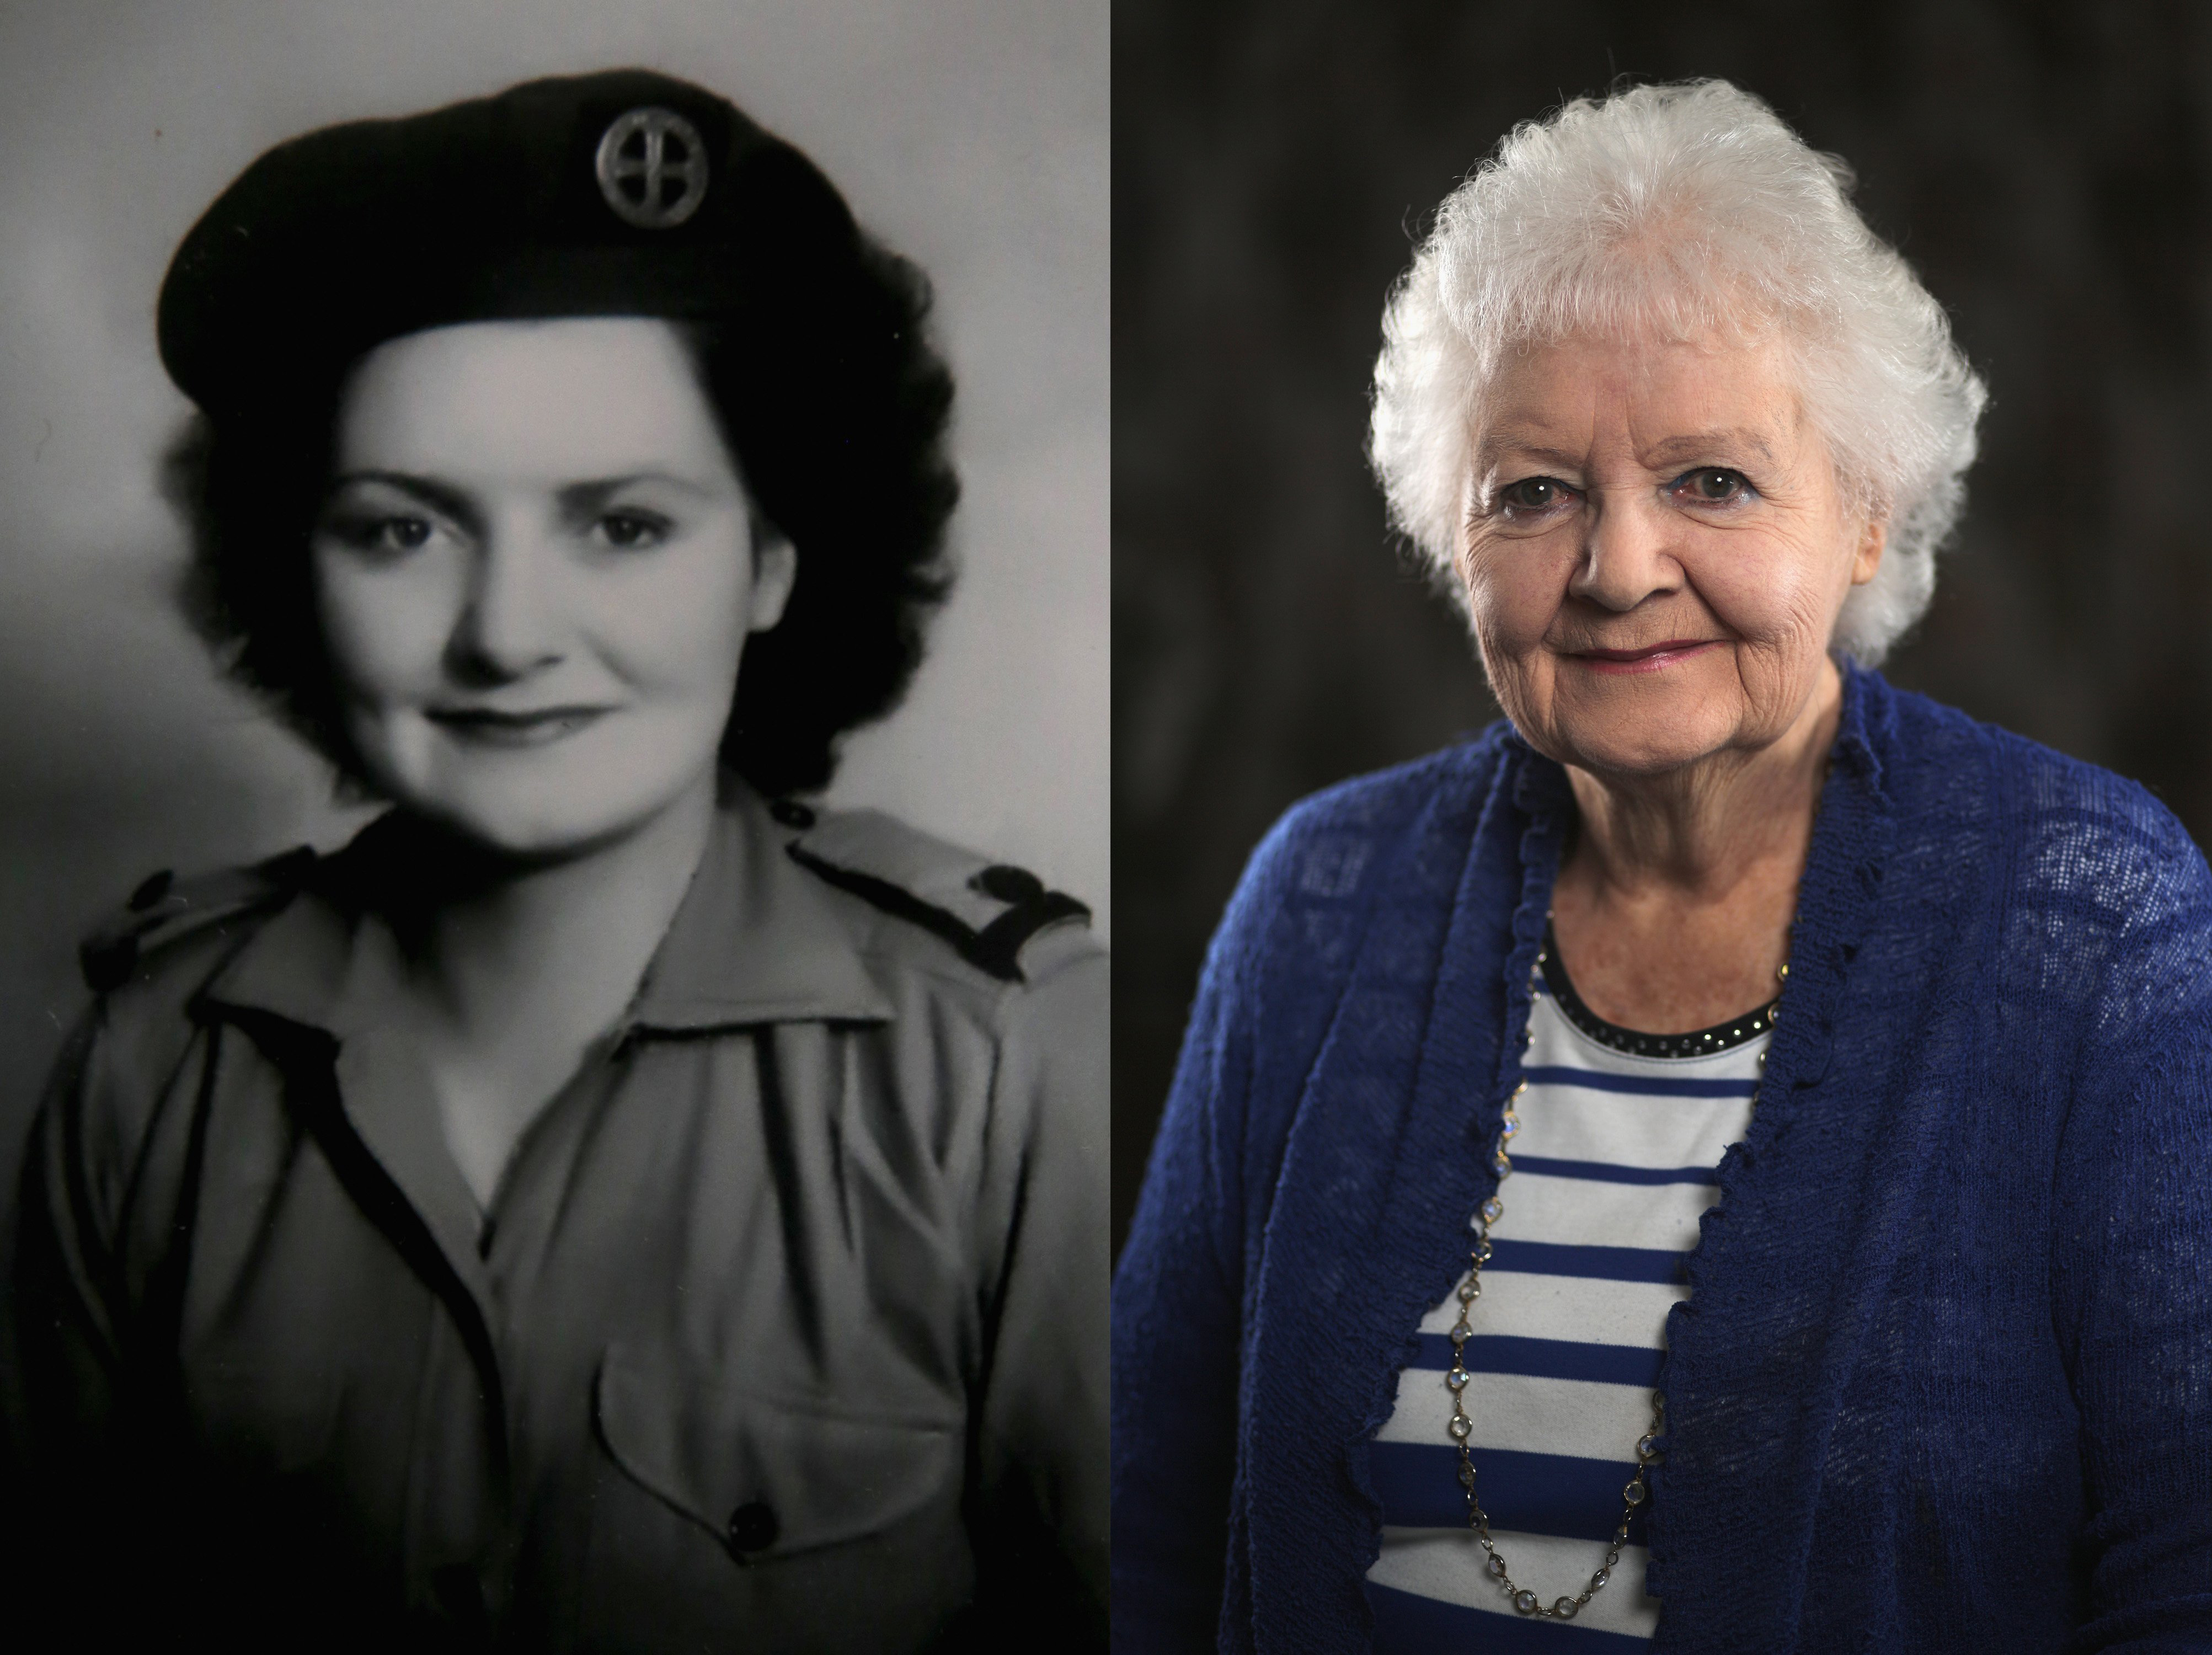 WWII wireless operator Marsali Wood photographed aged 18 when she joined the war effort in 1944 and at her home, age 89, on Aug. 7, 2015 in Codicote, England.